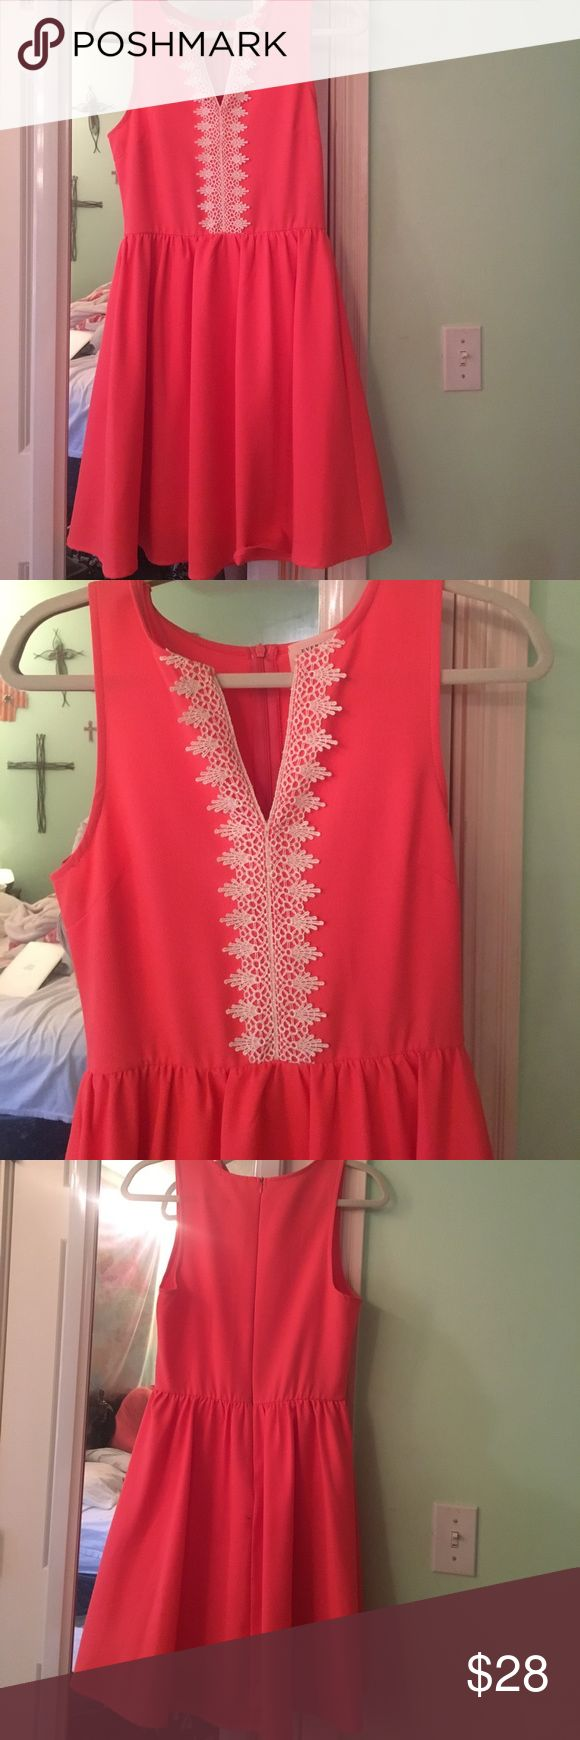 Coral Everly Dress Beautiful coral dress with lace detail. Worn once Everly Dresses